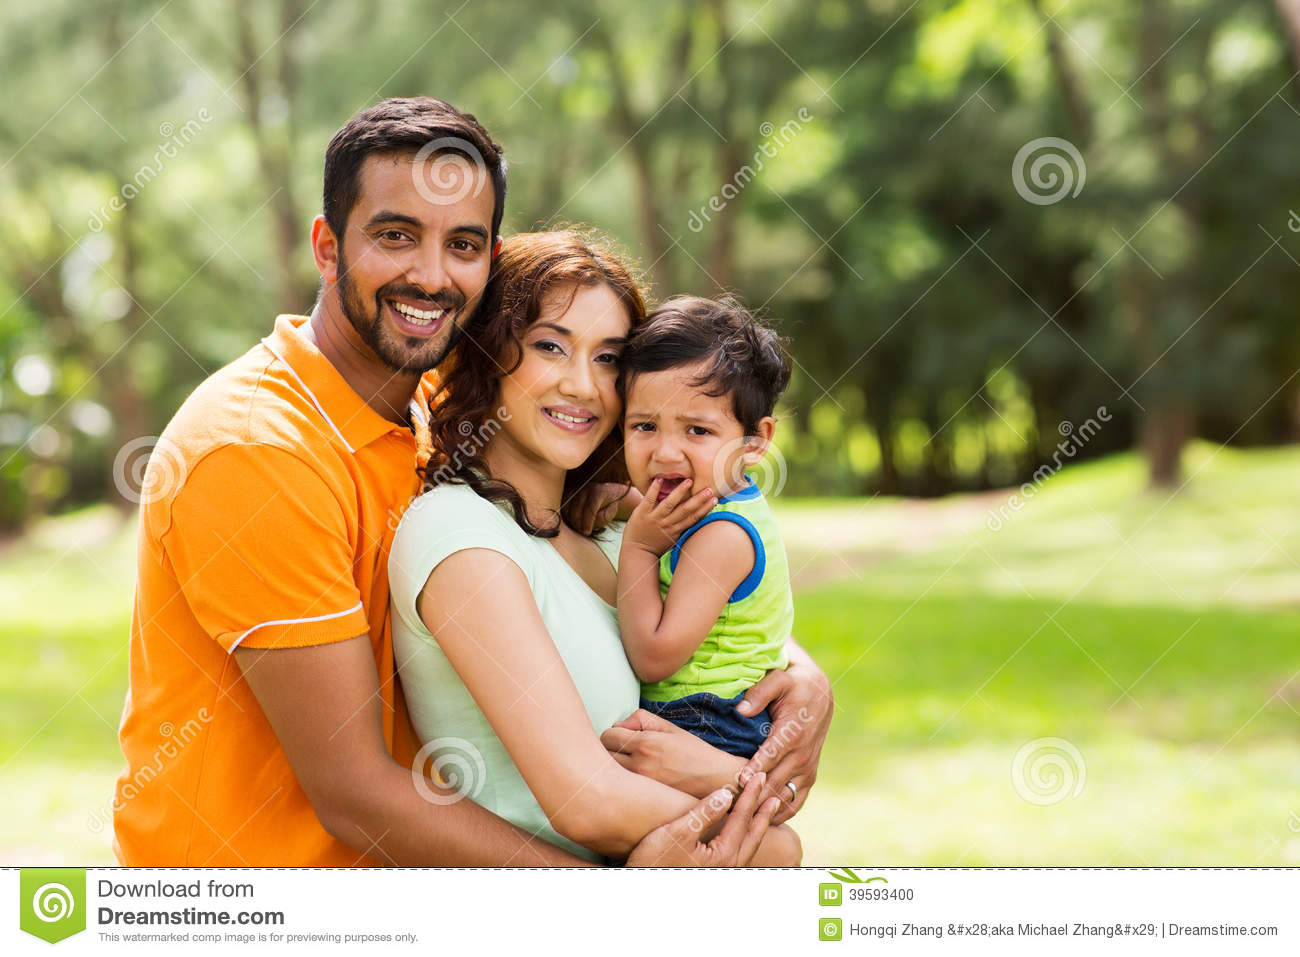 Beautiful indian family stock photo. Image of baby, nature ...